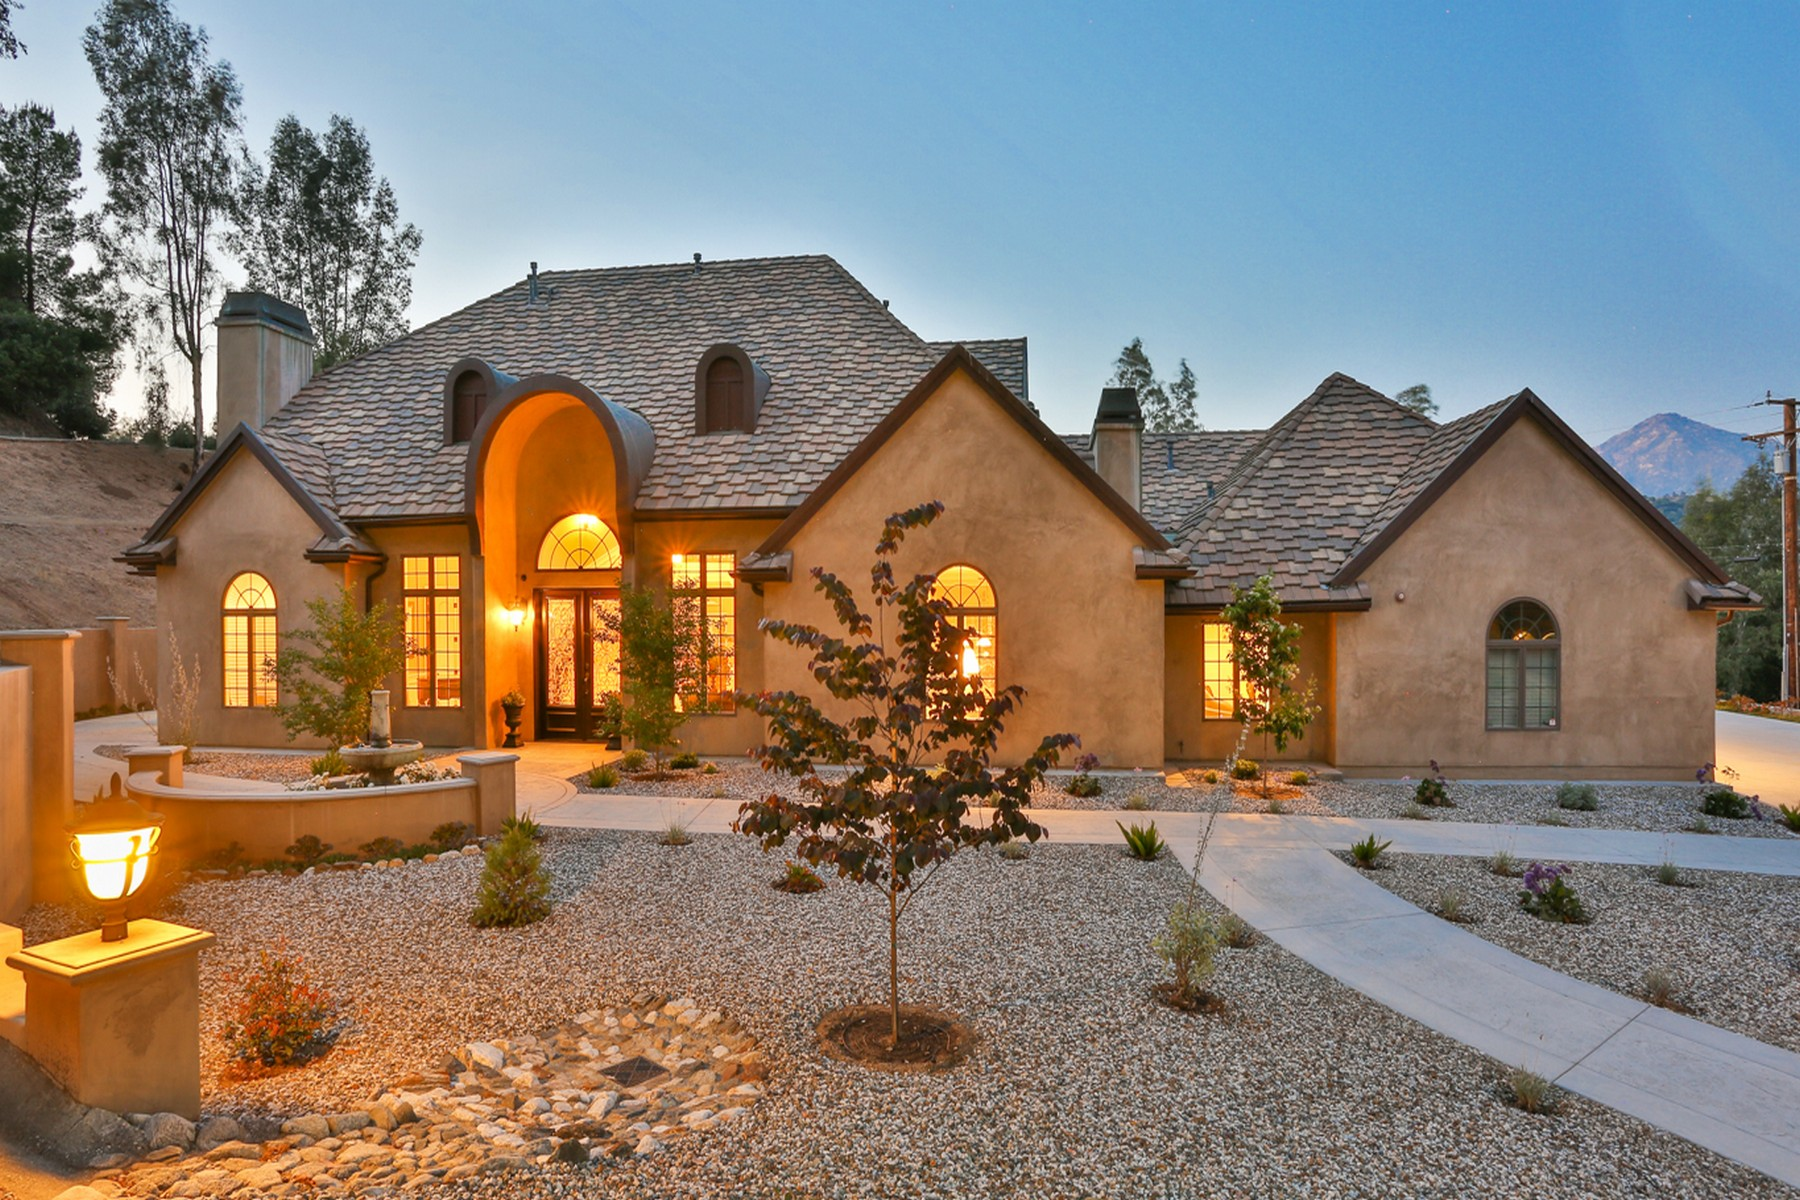 Single Family Homes for Active at 4550 Quail Valley Road, La Verne 91750 4550 Quail Valley Road La Verne, California 91750 United States